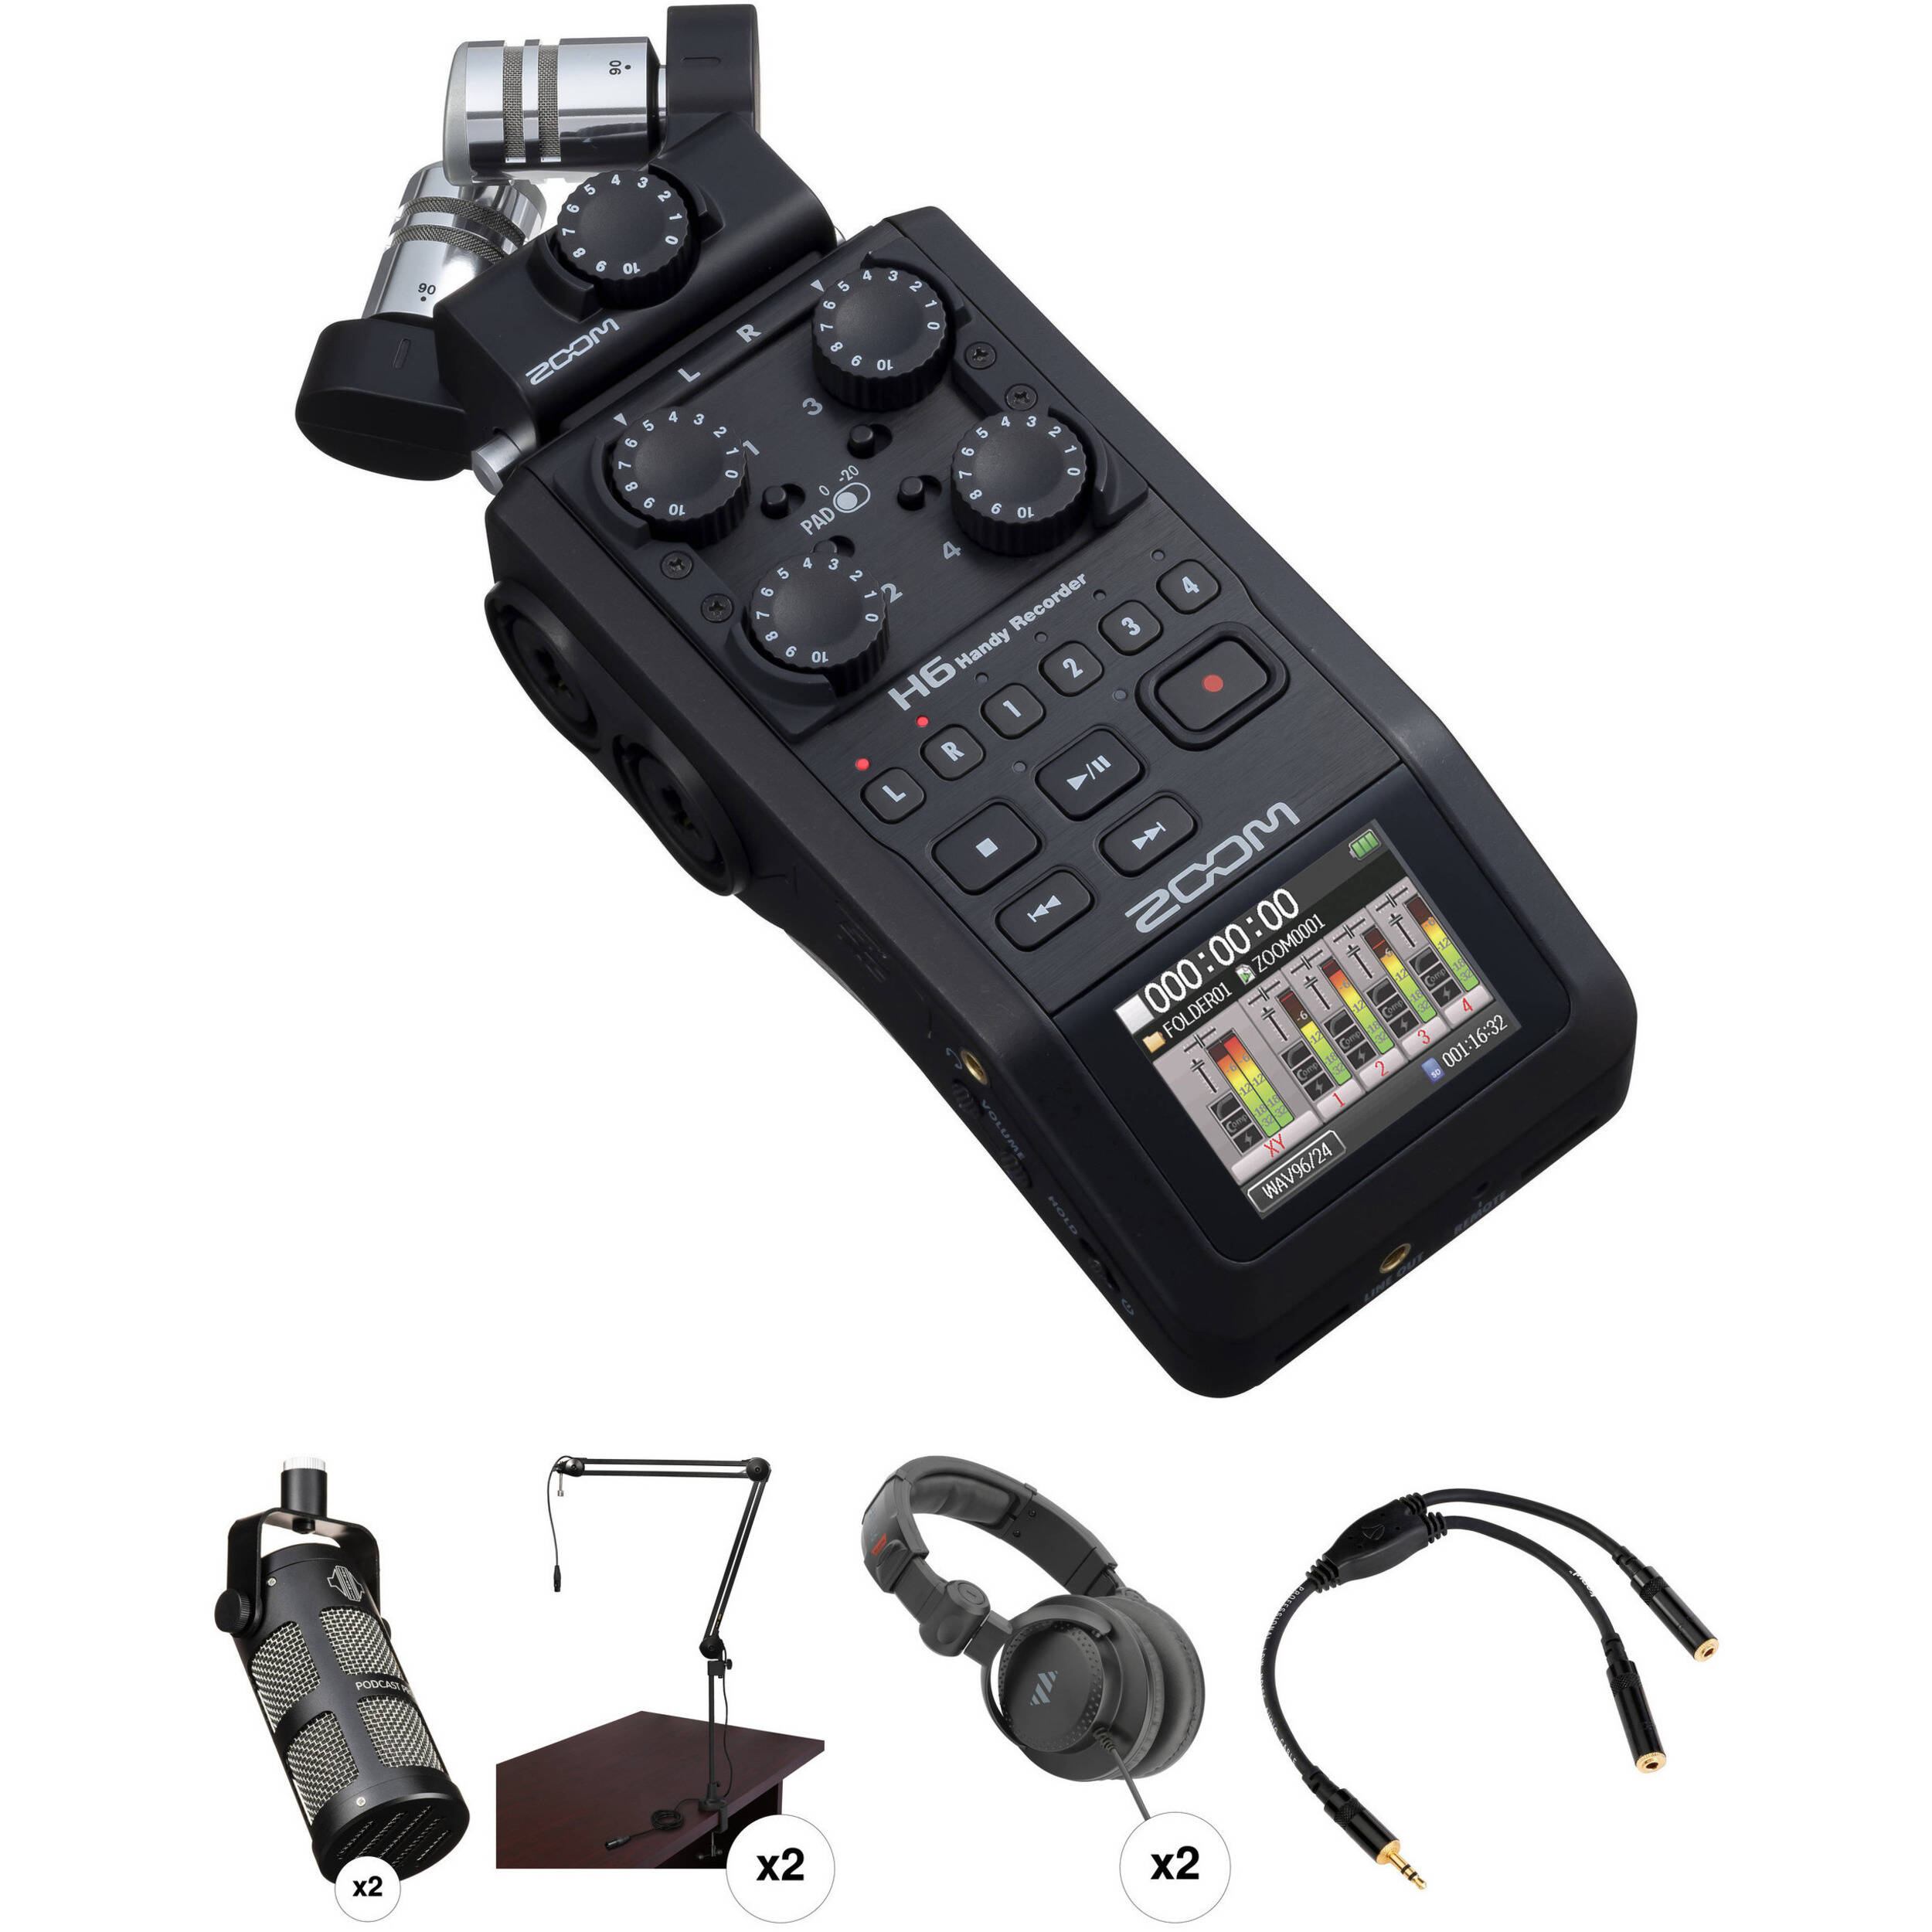 Zoom H6 Recorder Zoom H6 Recorder Podcast Kit With Two Mxl Bcd 1 Broadcast Microphones